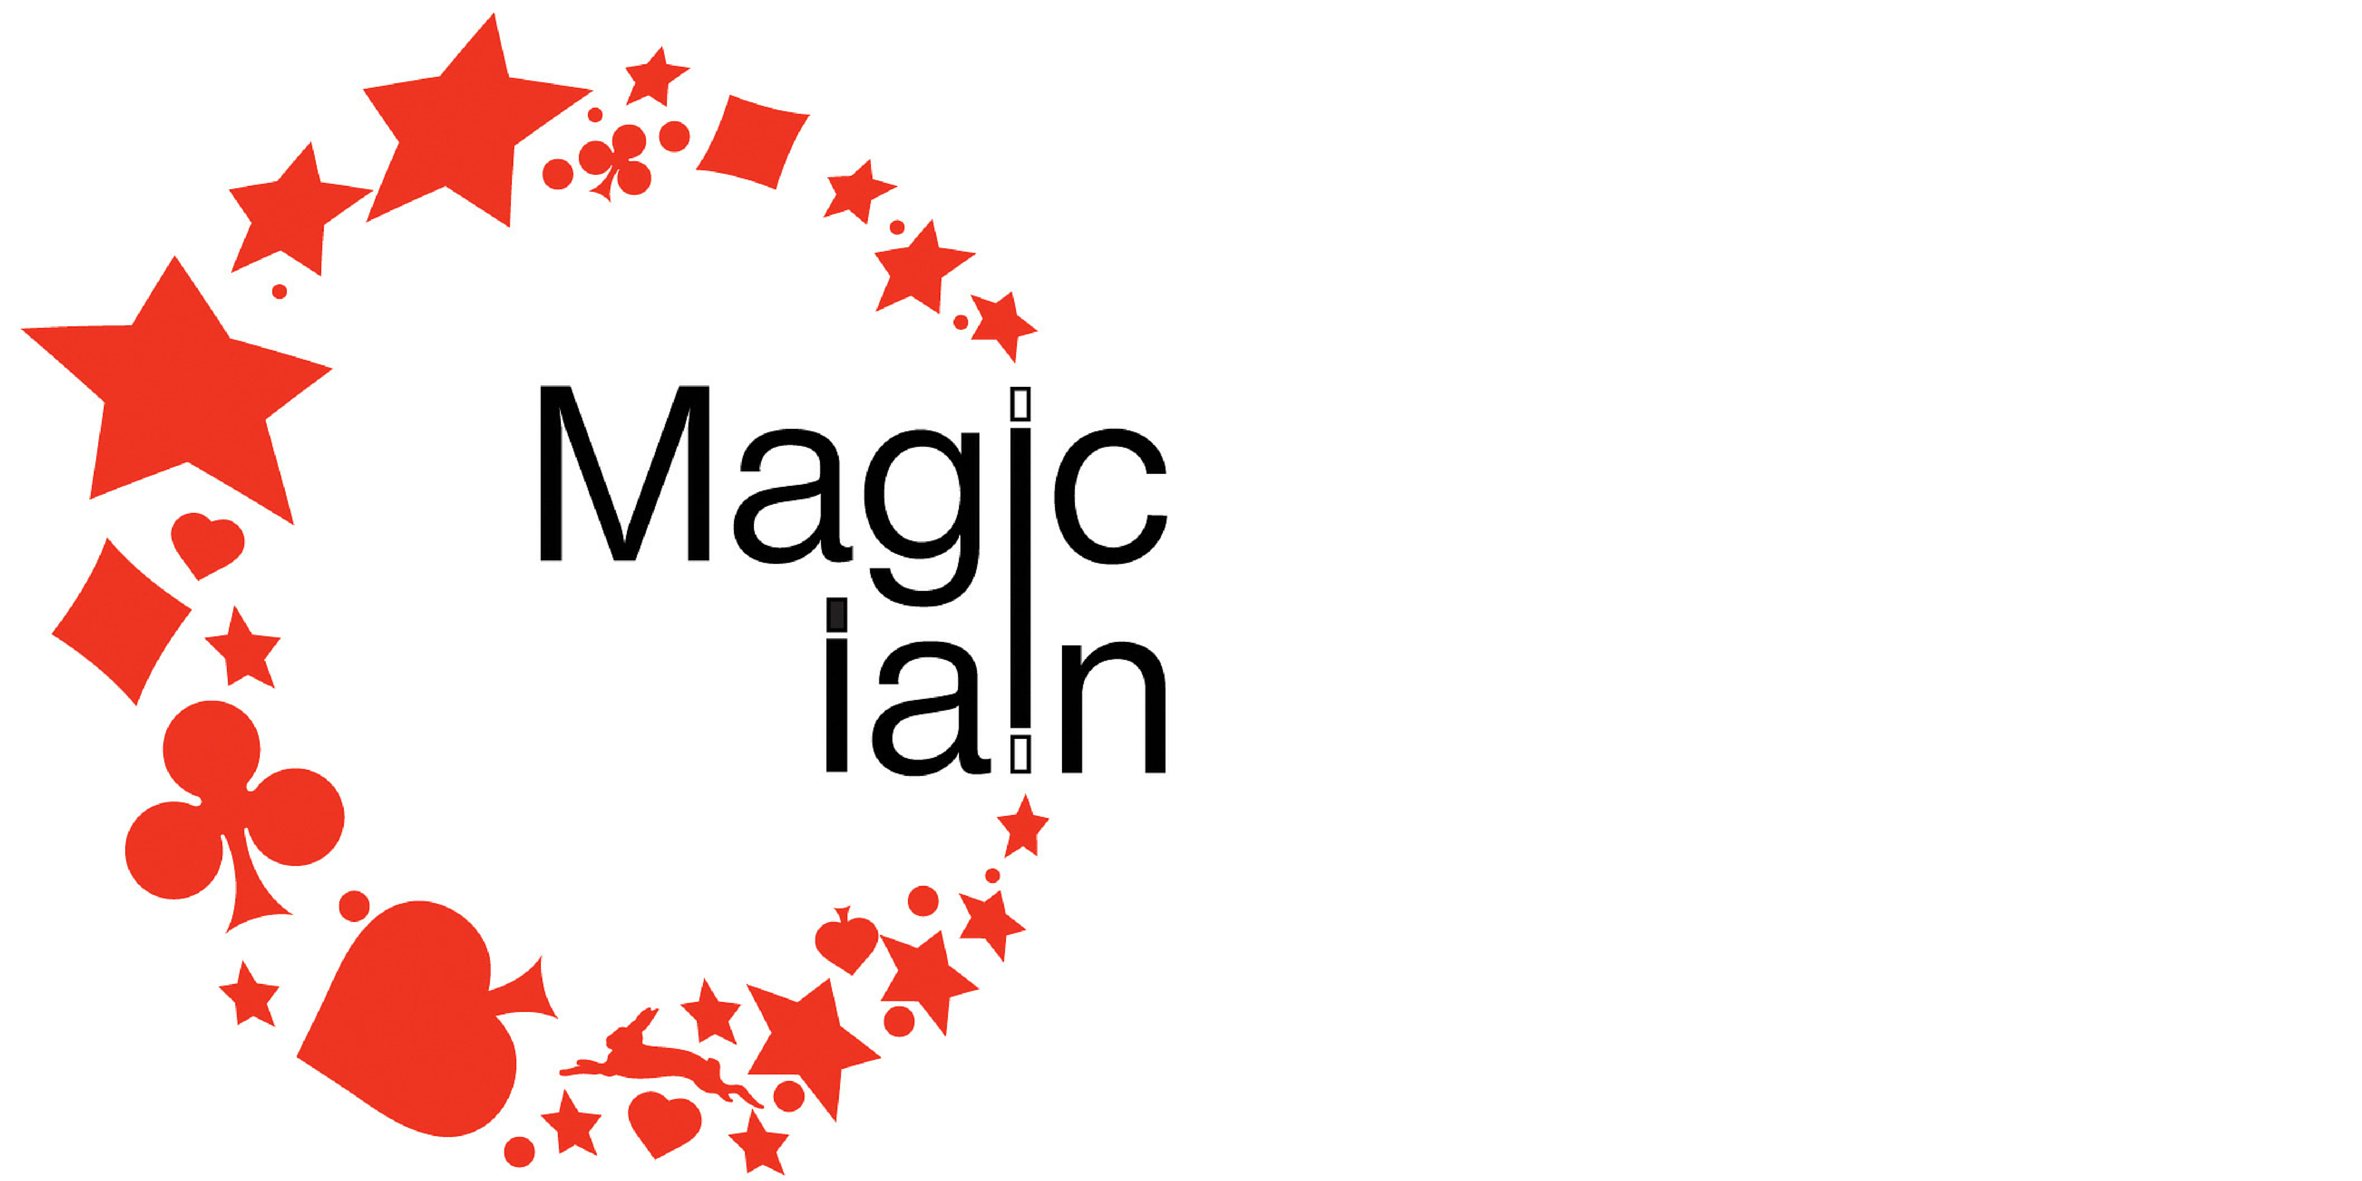 Magic Iain